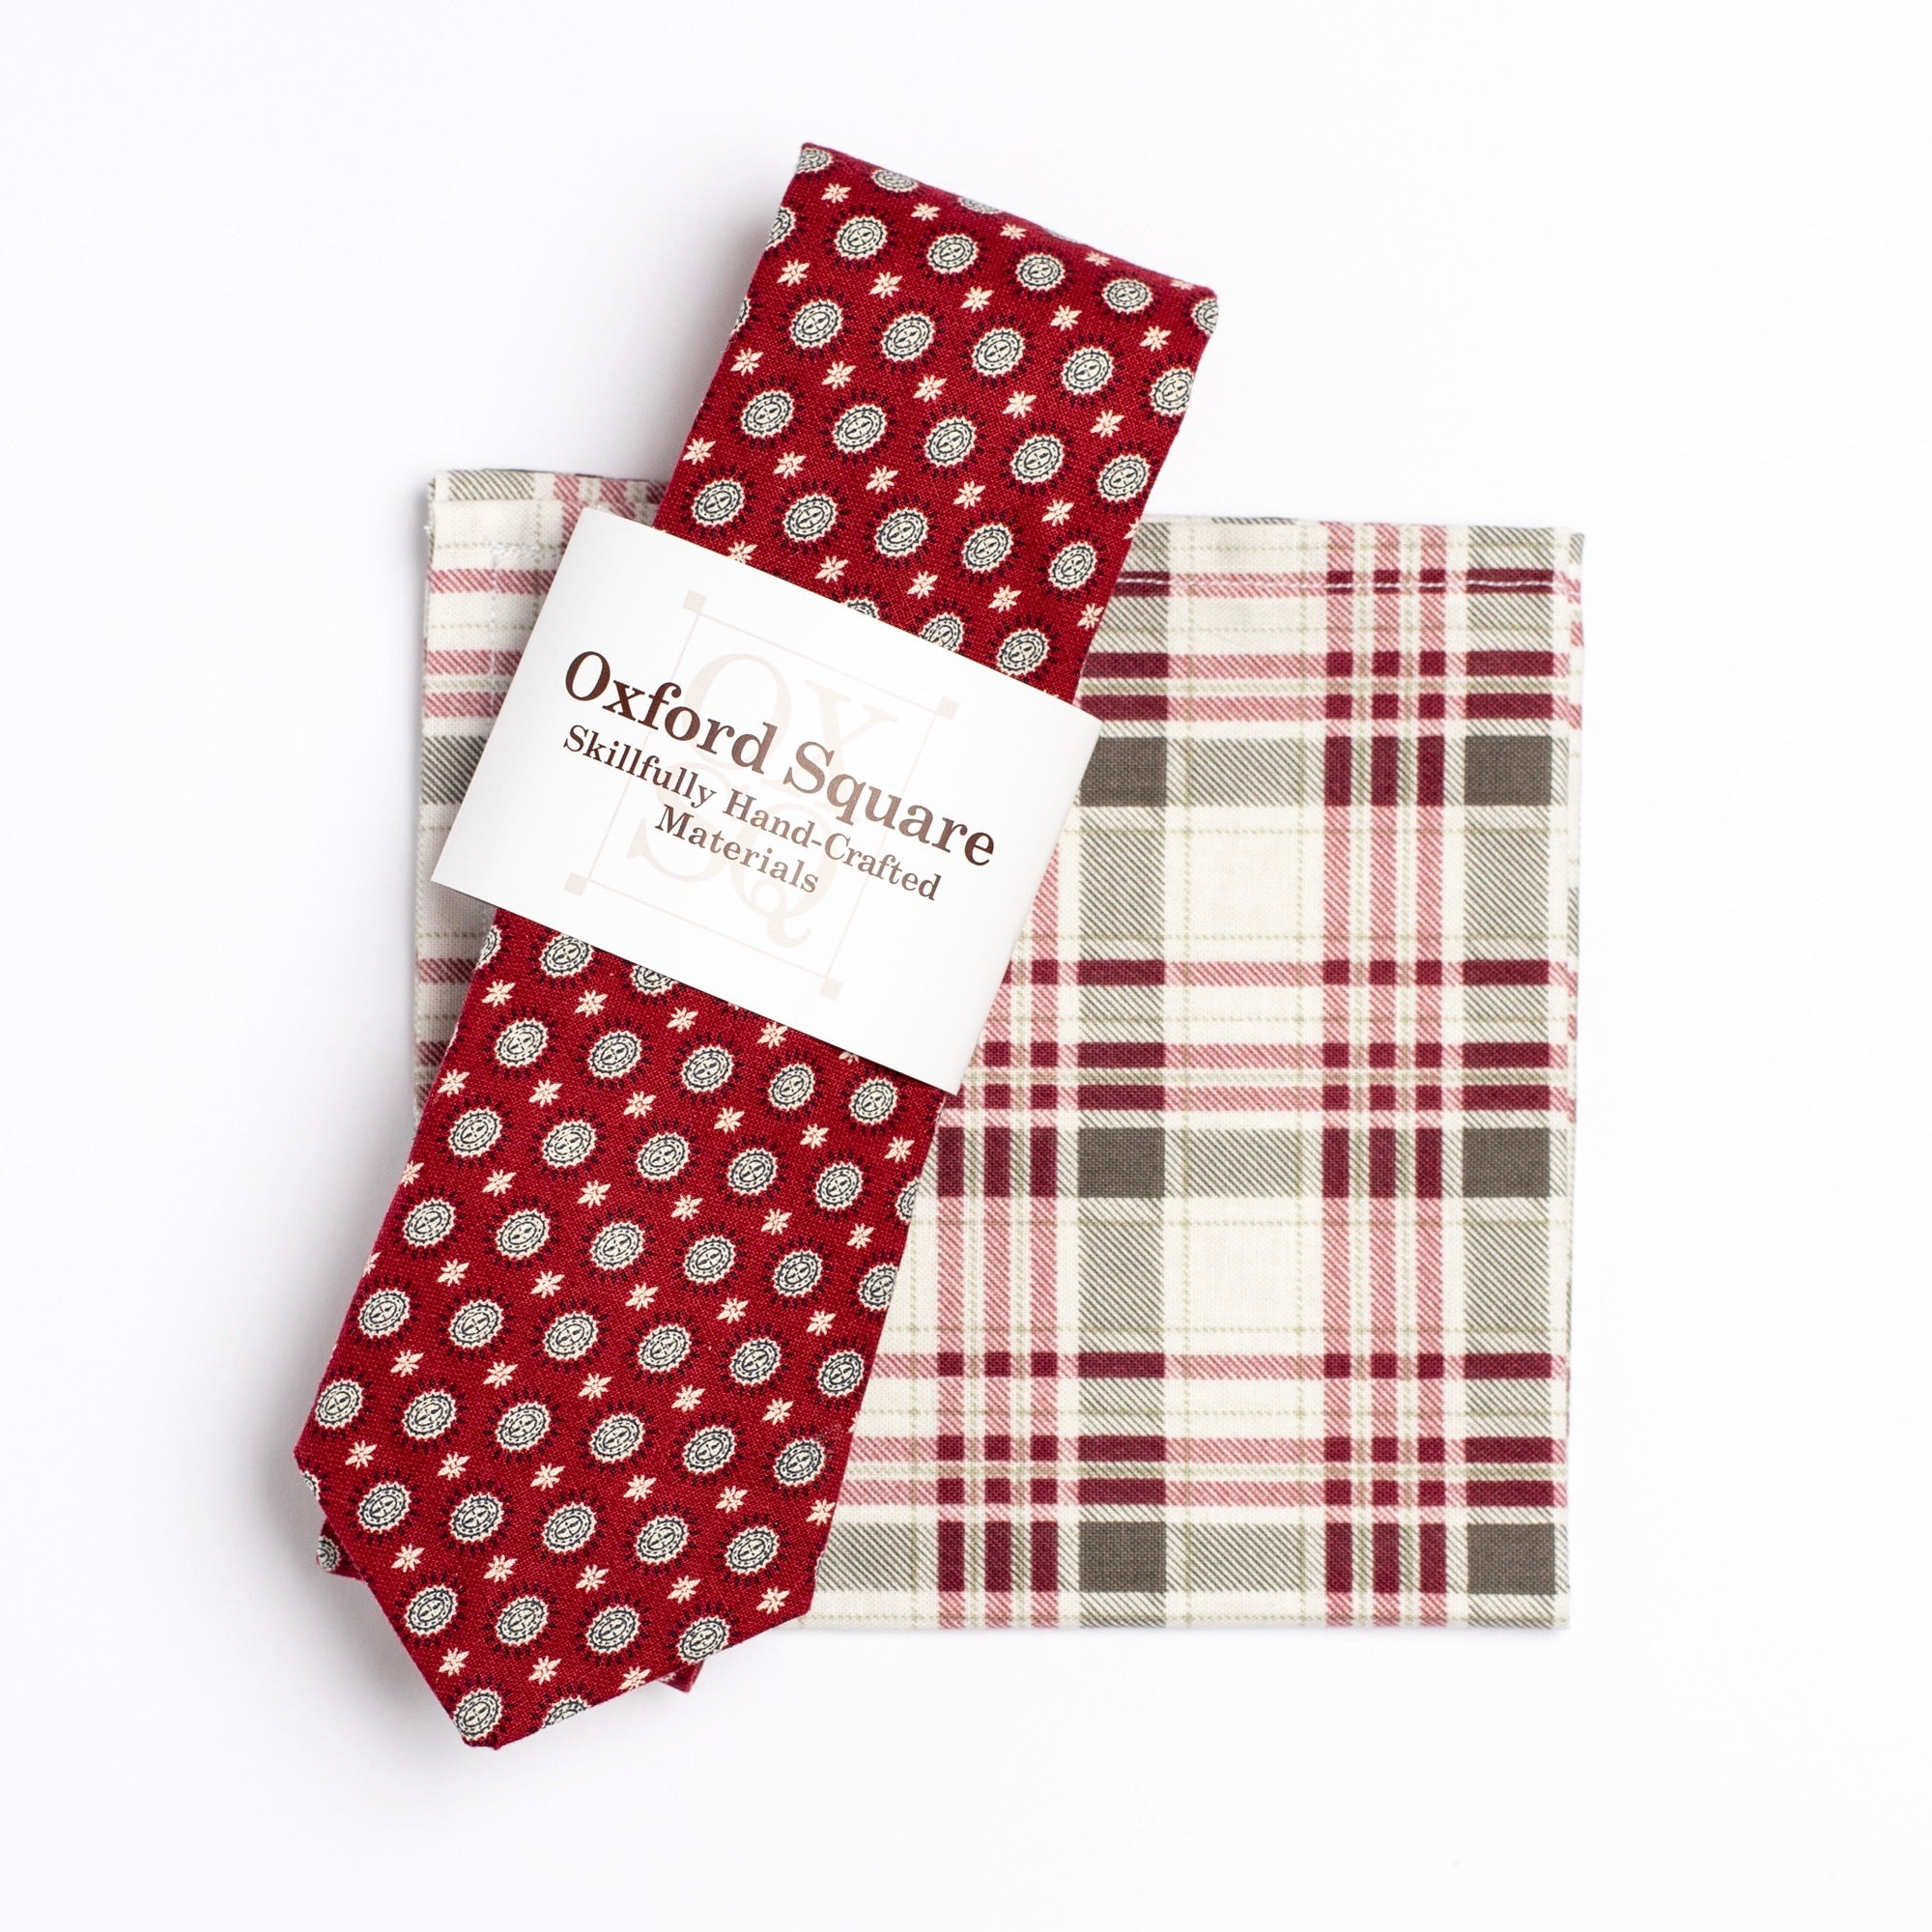 red and grey plaid pattern pocket square and foulard pattern tie pack - Oxford Square